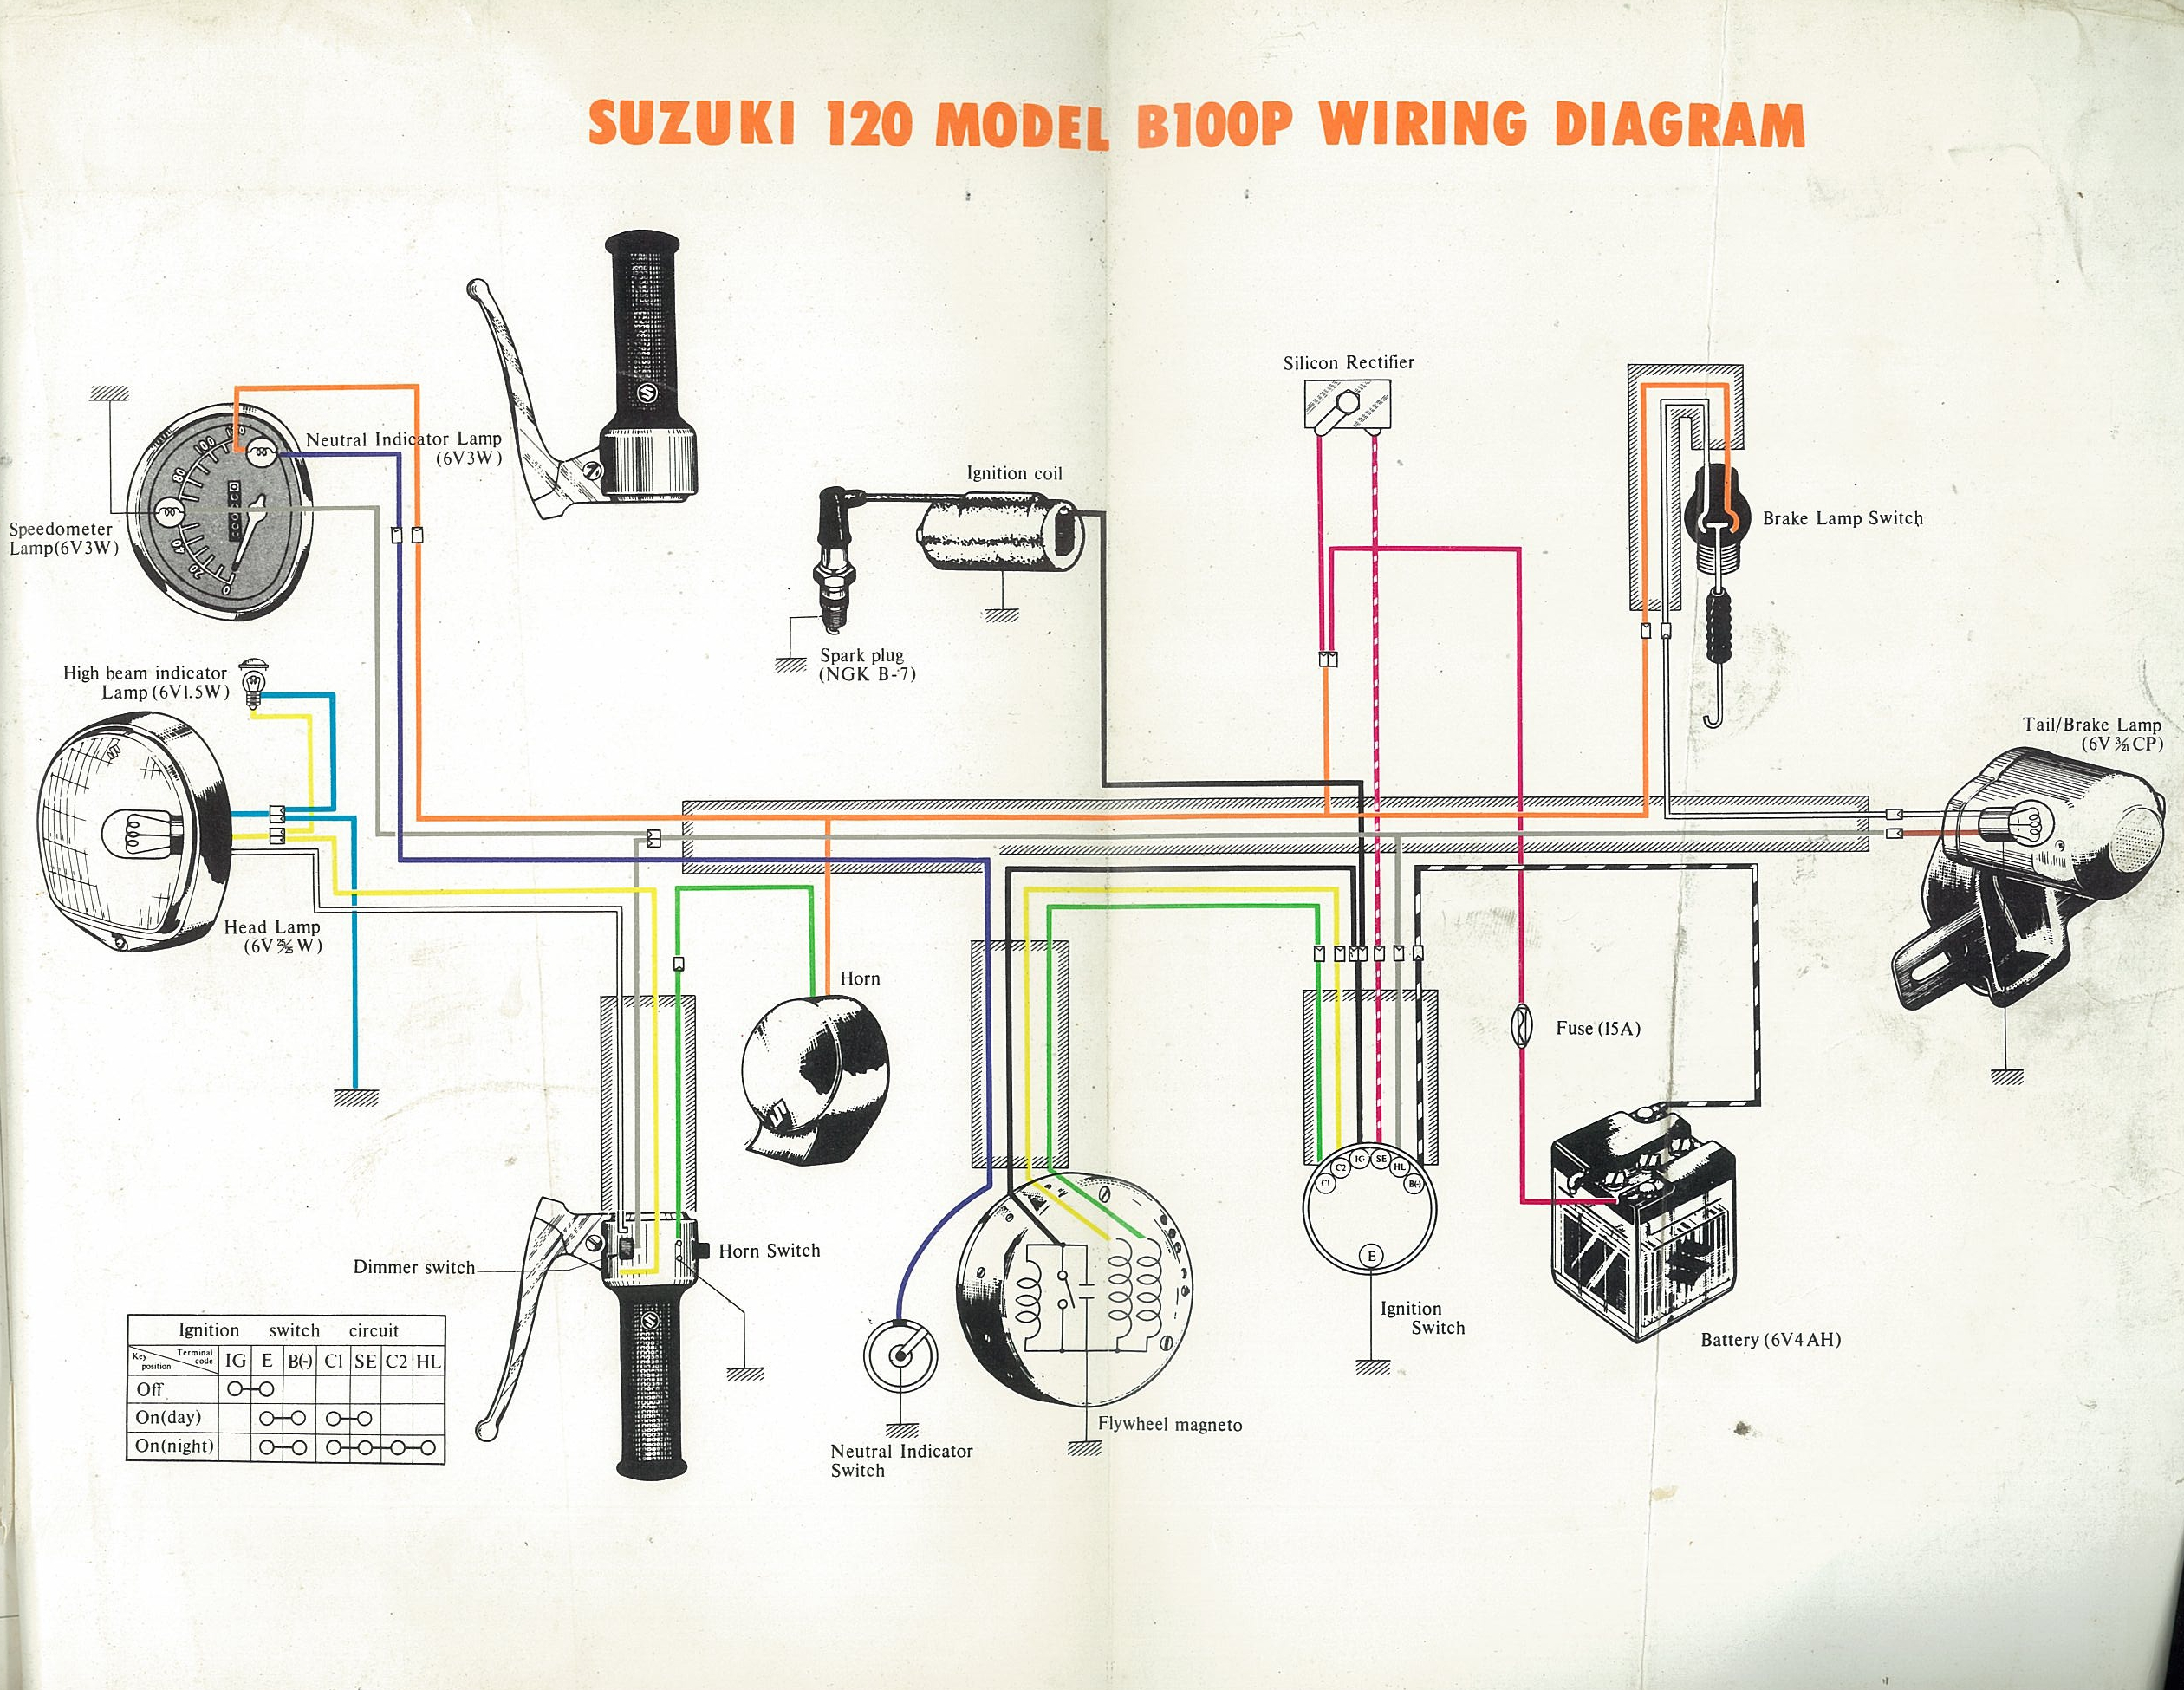 Suzuki Marauder Wiring Diagram And Schematics Vz800 Ts Engine Diagrams